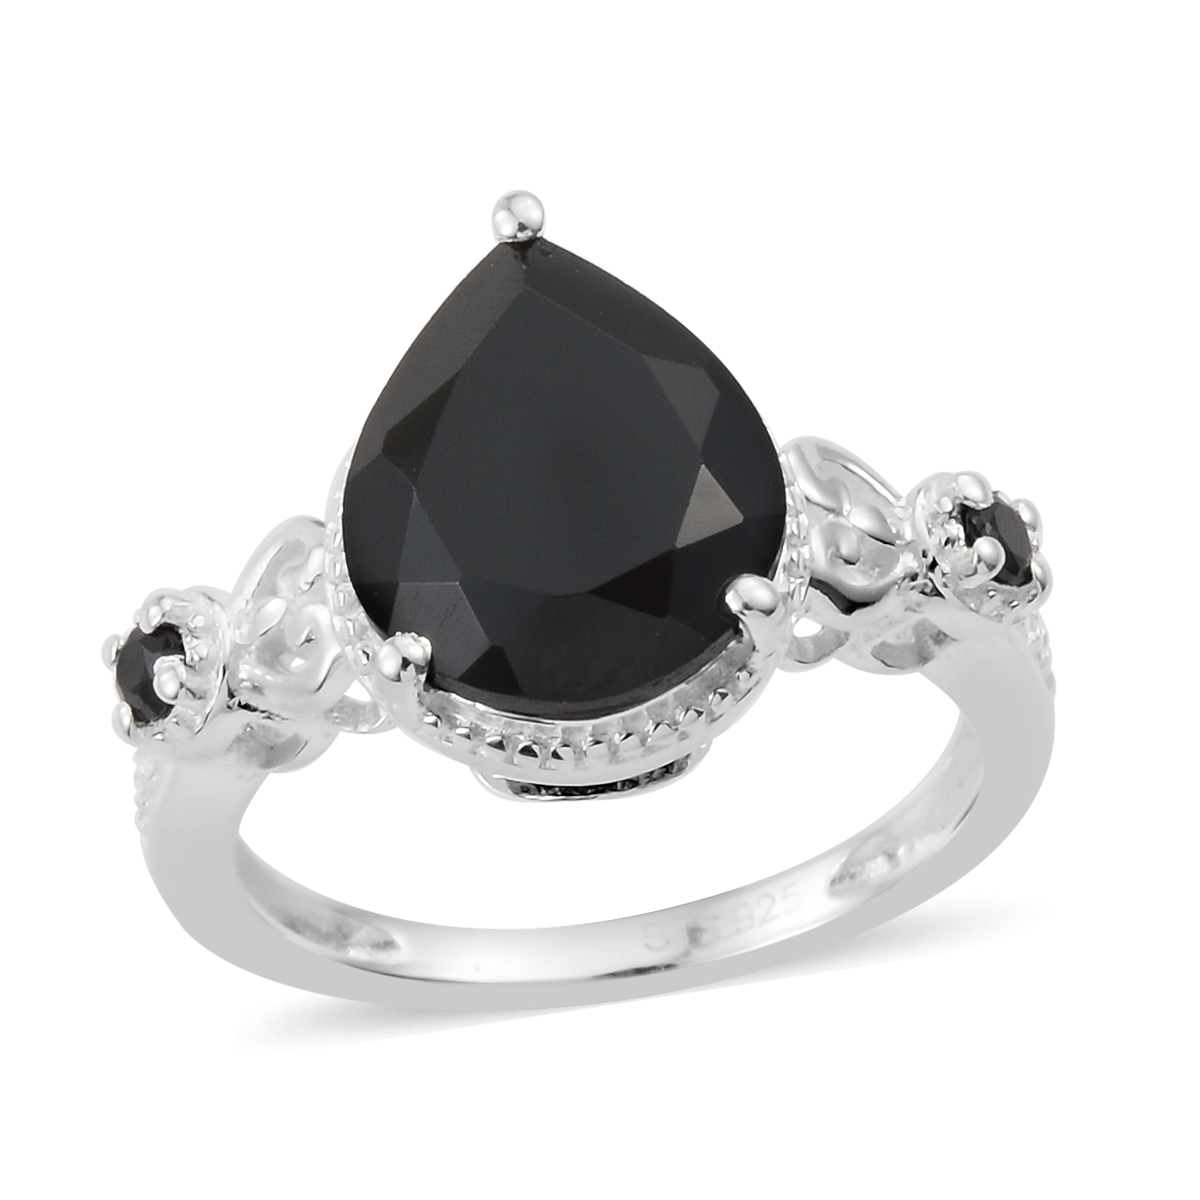 c2ced89ec Thai Black Spinel Sterling Silver Ring (Size 11.0) 4.08 ctw | Fashion |  Rings | Jewelry | online-store | Shop LC